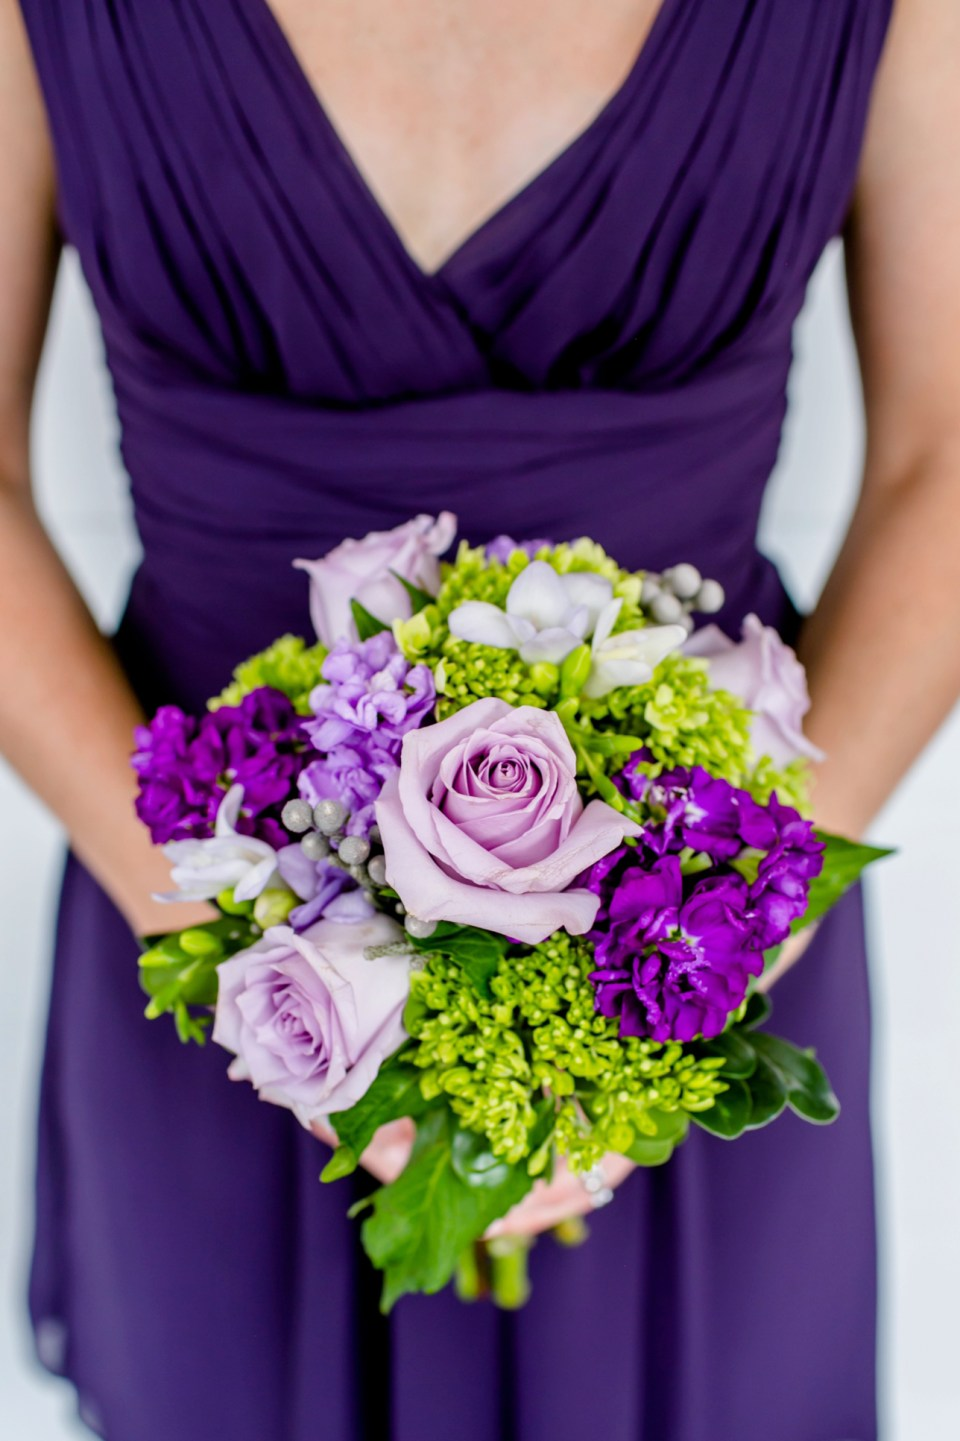 Wedding-Bouquet-Inspiration-Flowers-Bridal-Bridesmaids358